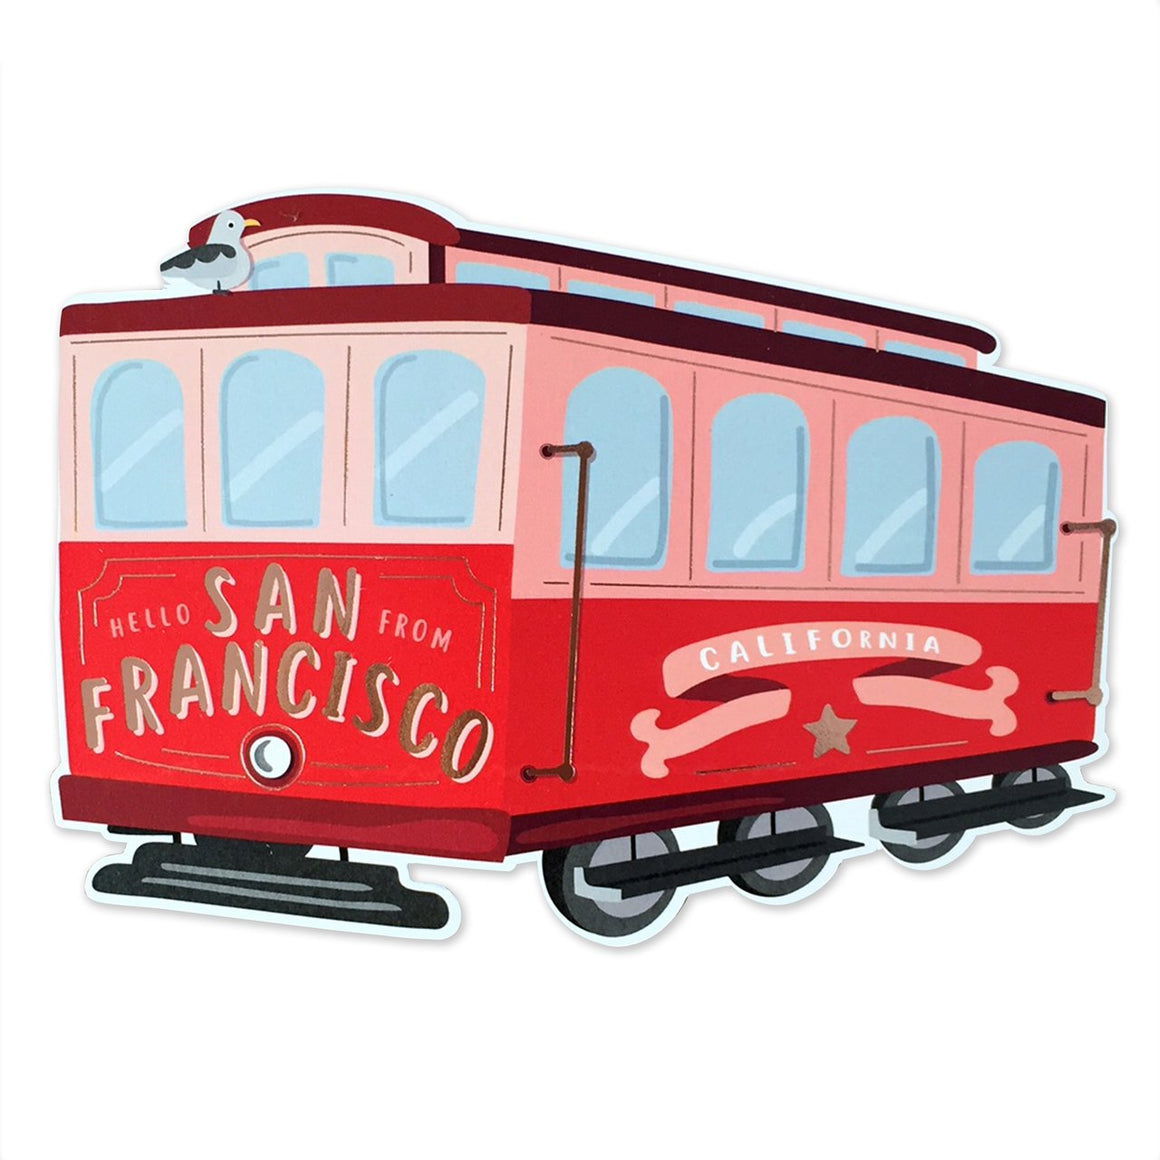 The Social Type: San Francisco Trolley Card